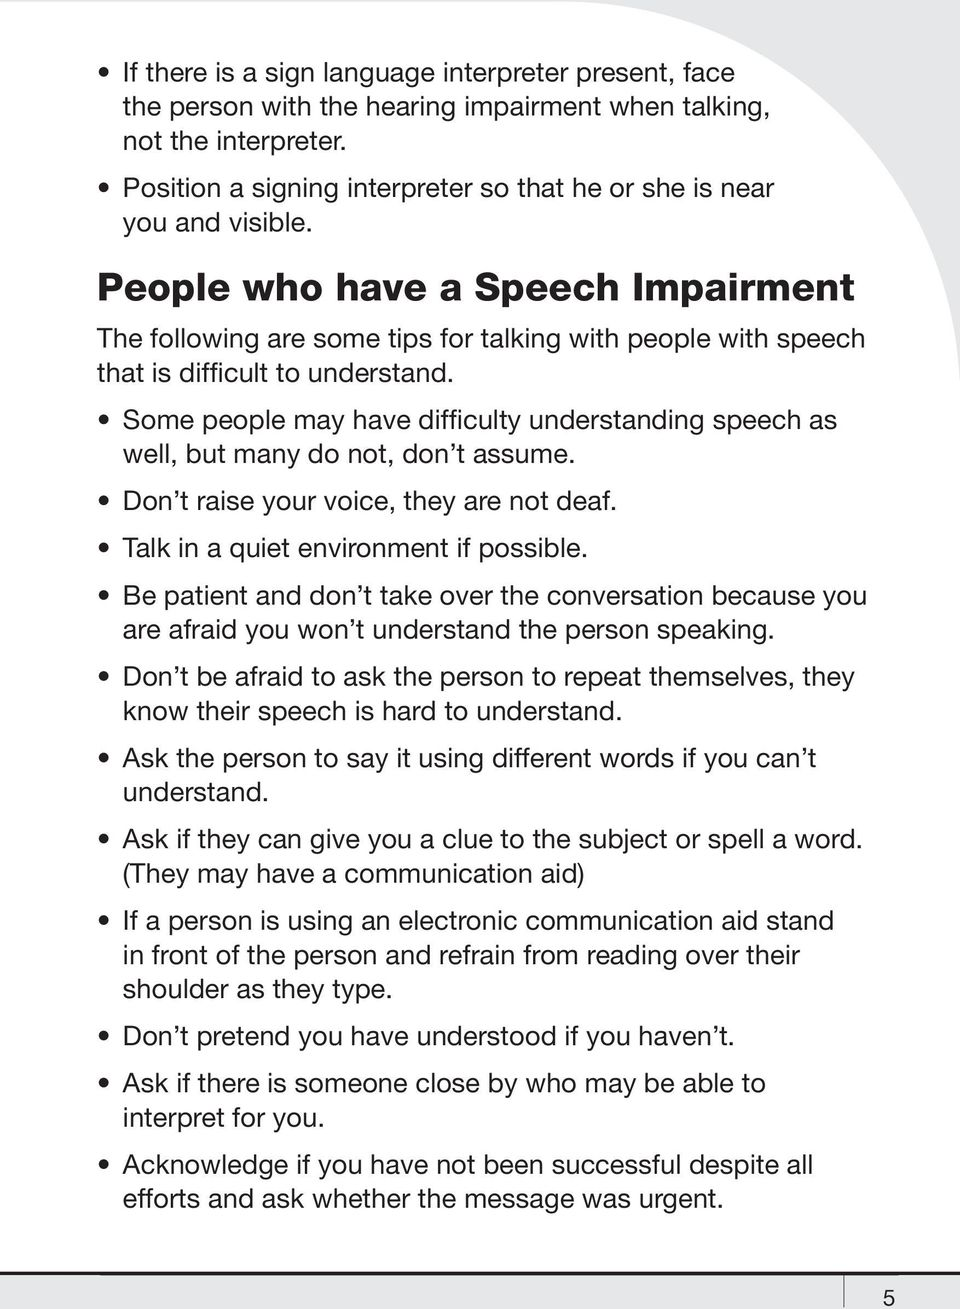 People who have a Speech Impairment The following are some tips for talking with people with speech that is difficult to understand.